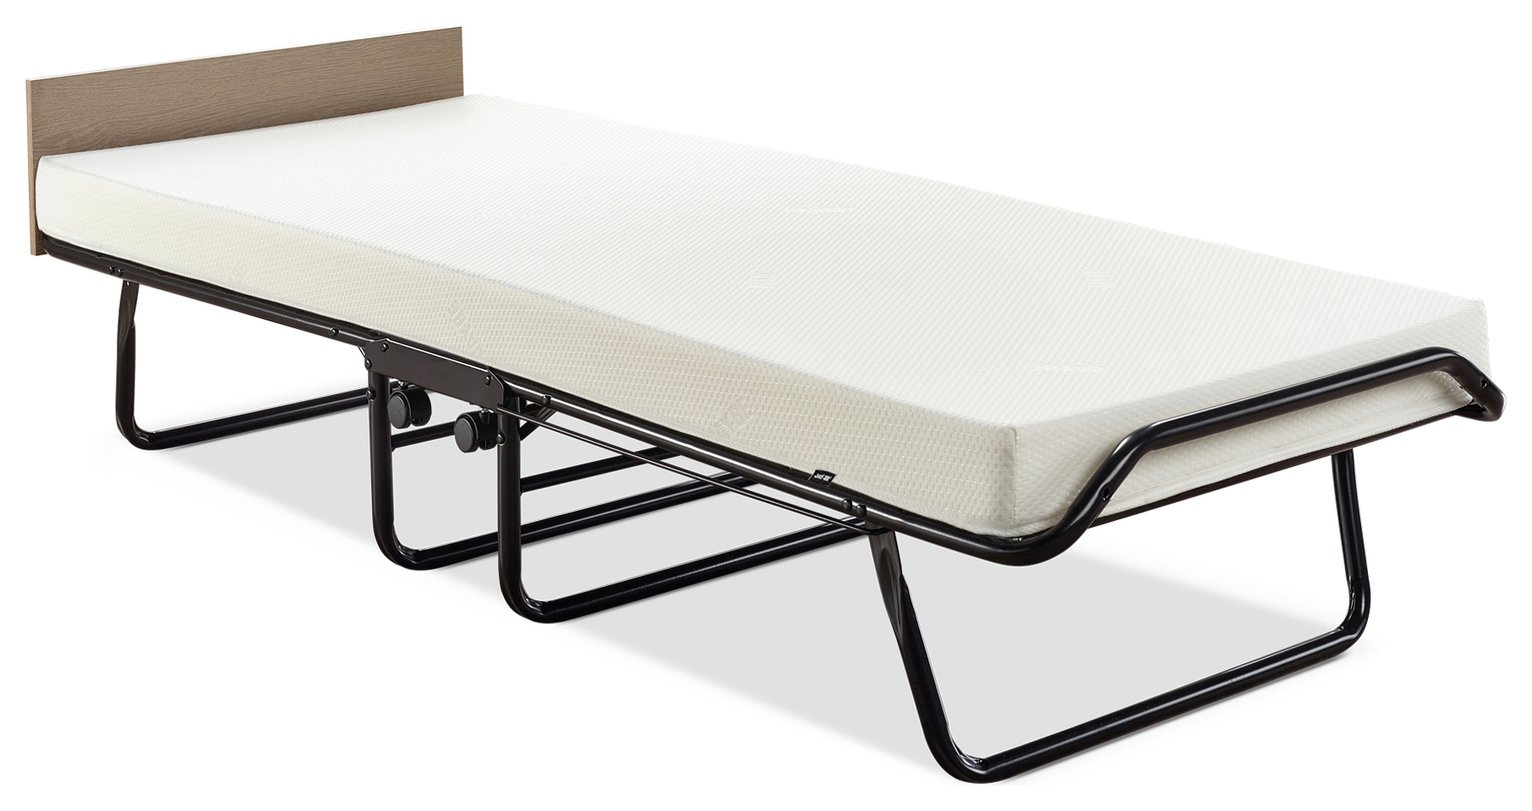 JAY-BE Folding Guest Bed with Airflow Mattress review